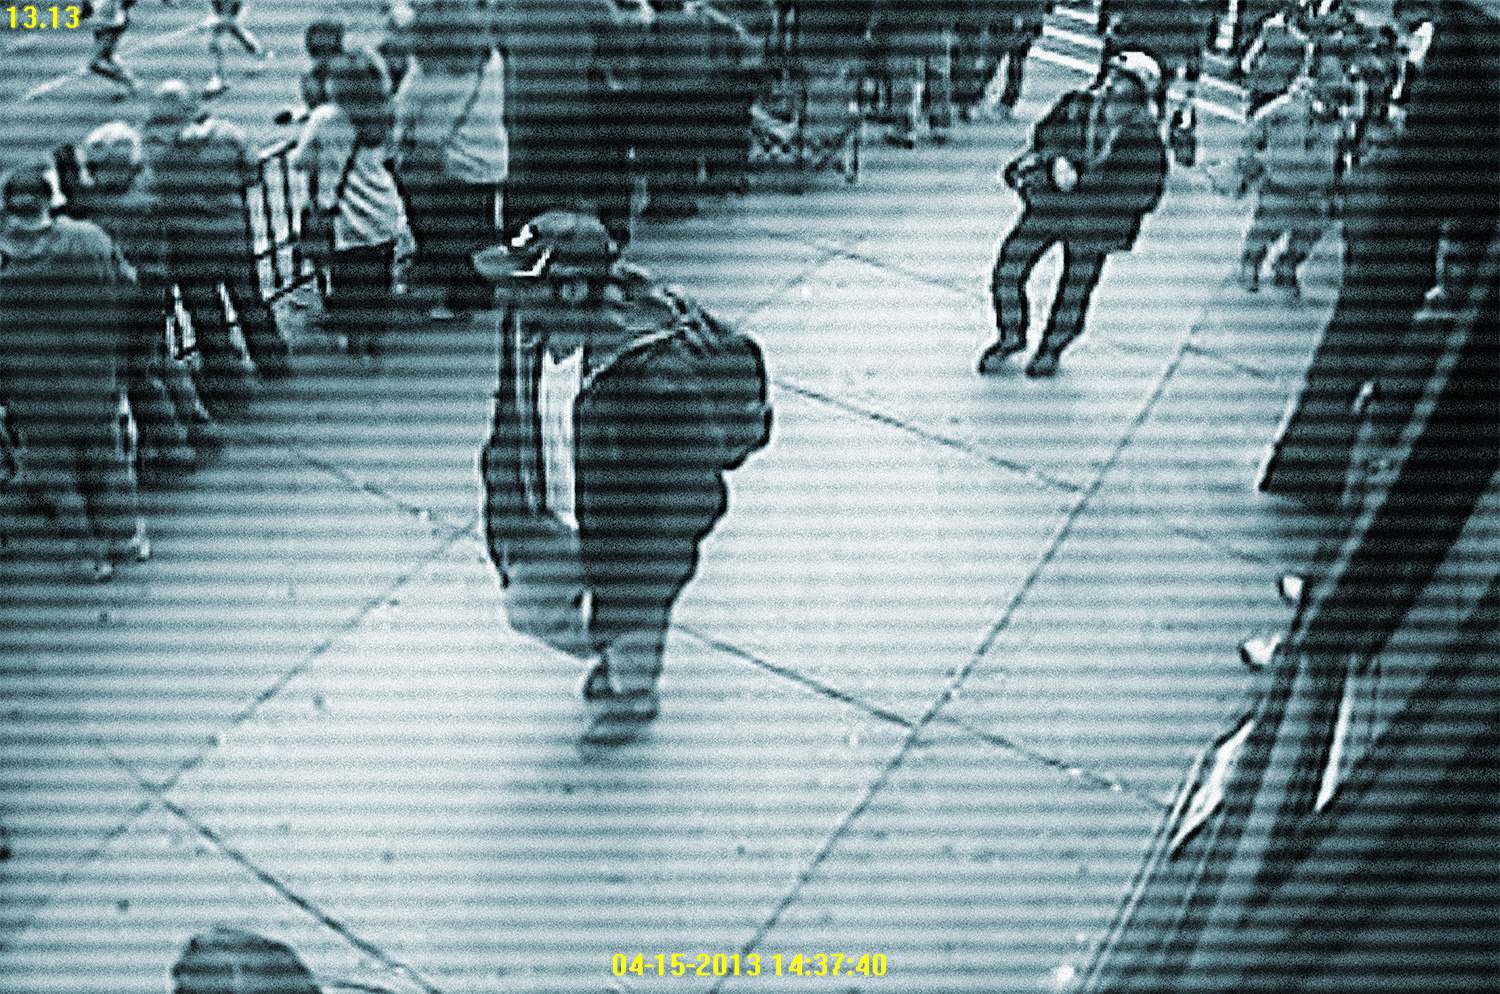 boston-marathon-bombing-suspects-2013